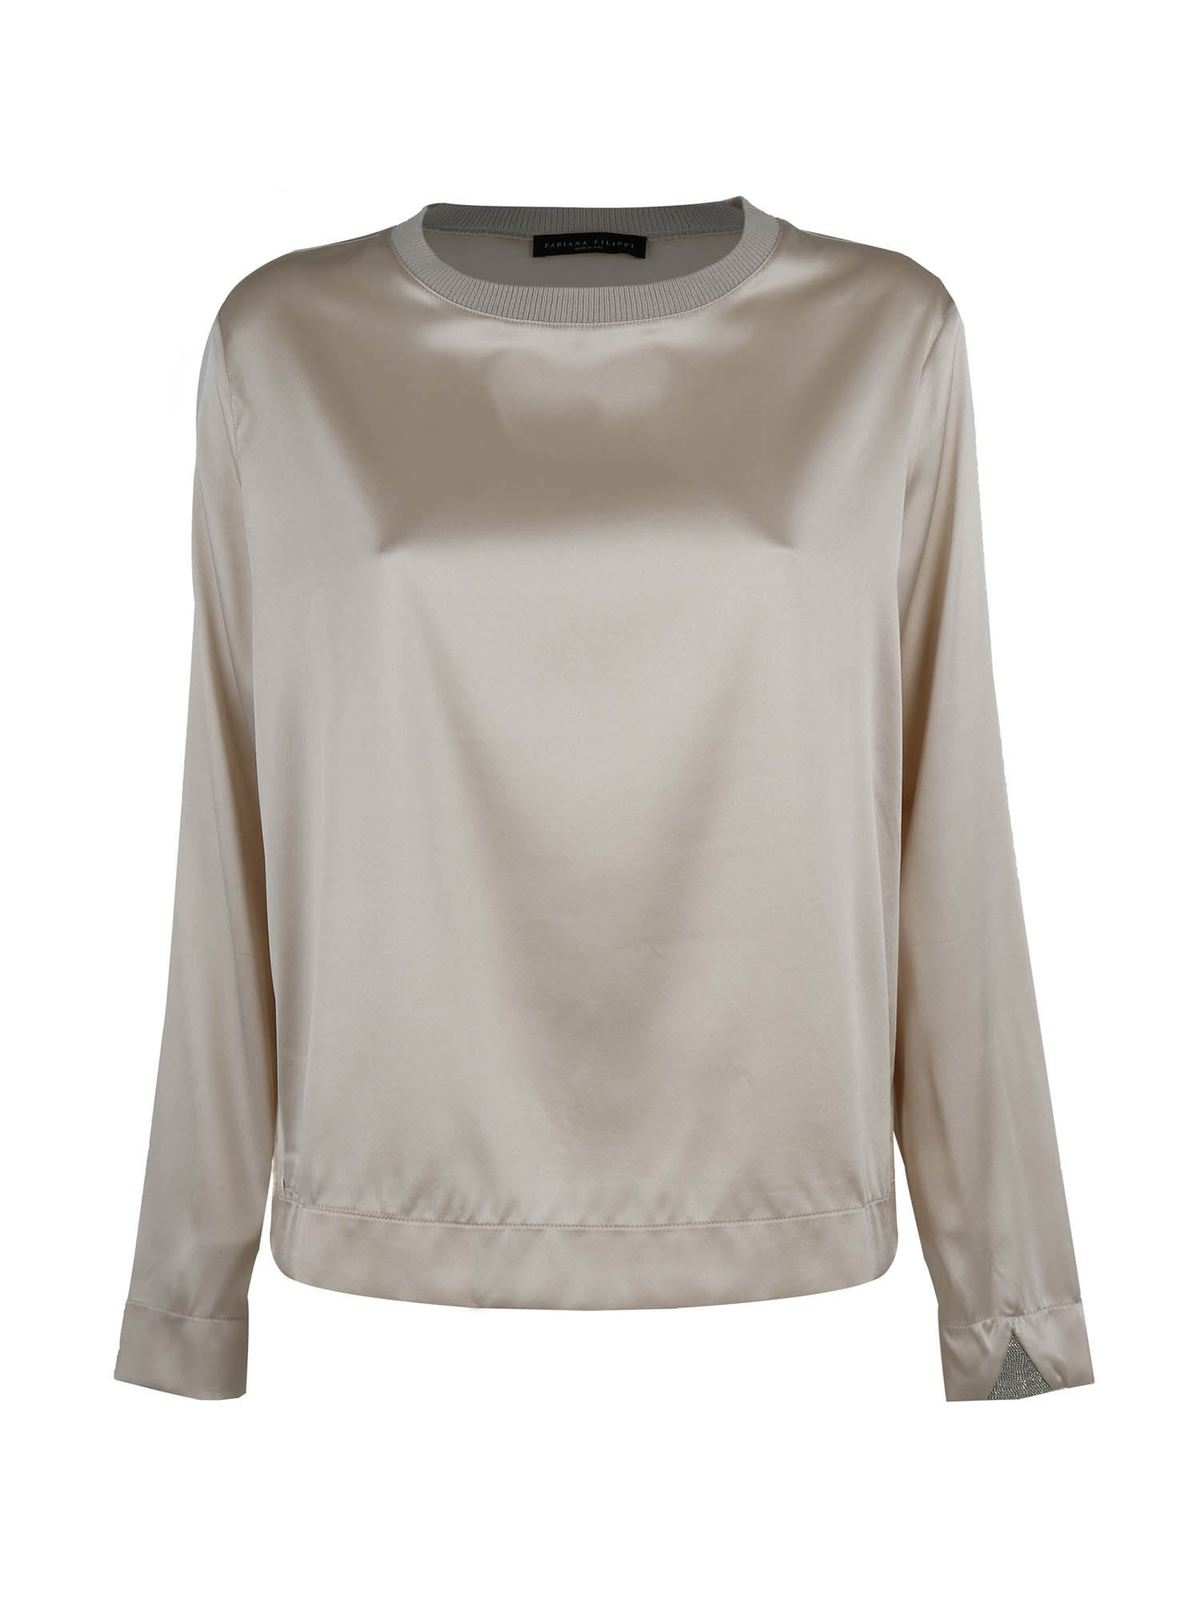 Fabiana Filippi JEWEL DETAIL SILK T-SHIRT IN GREY